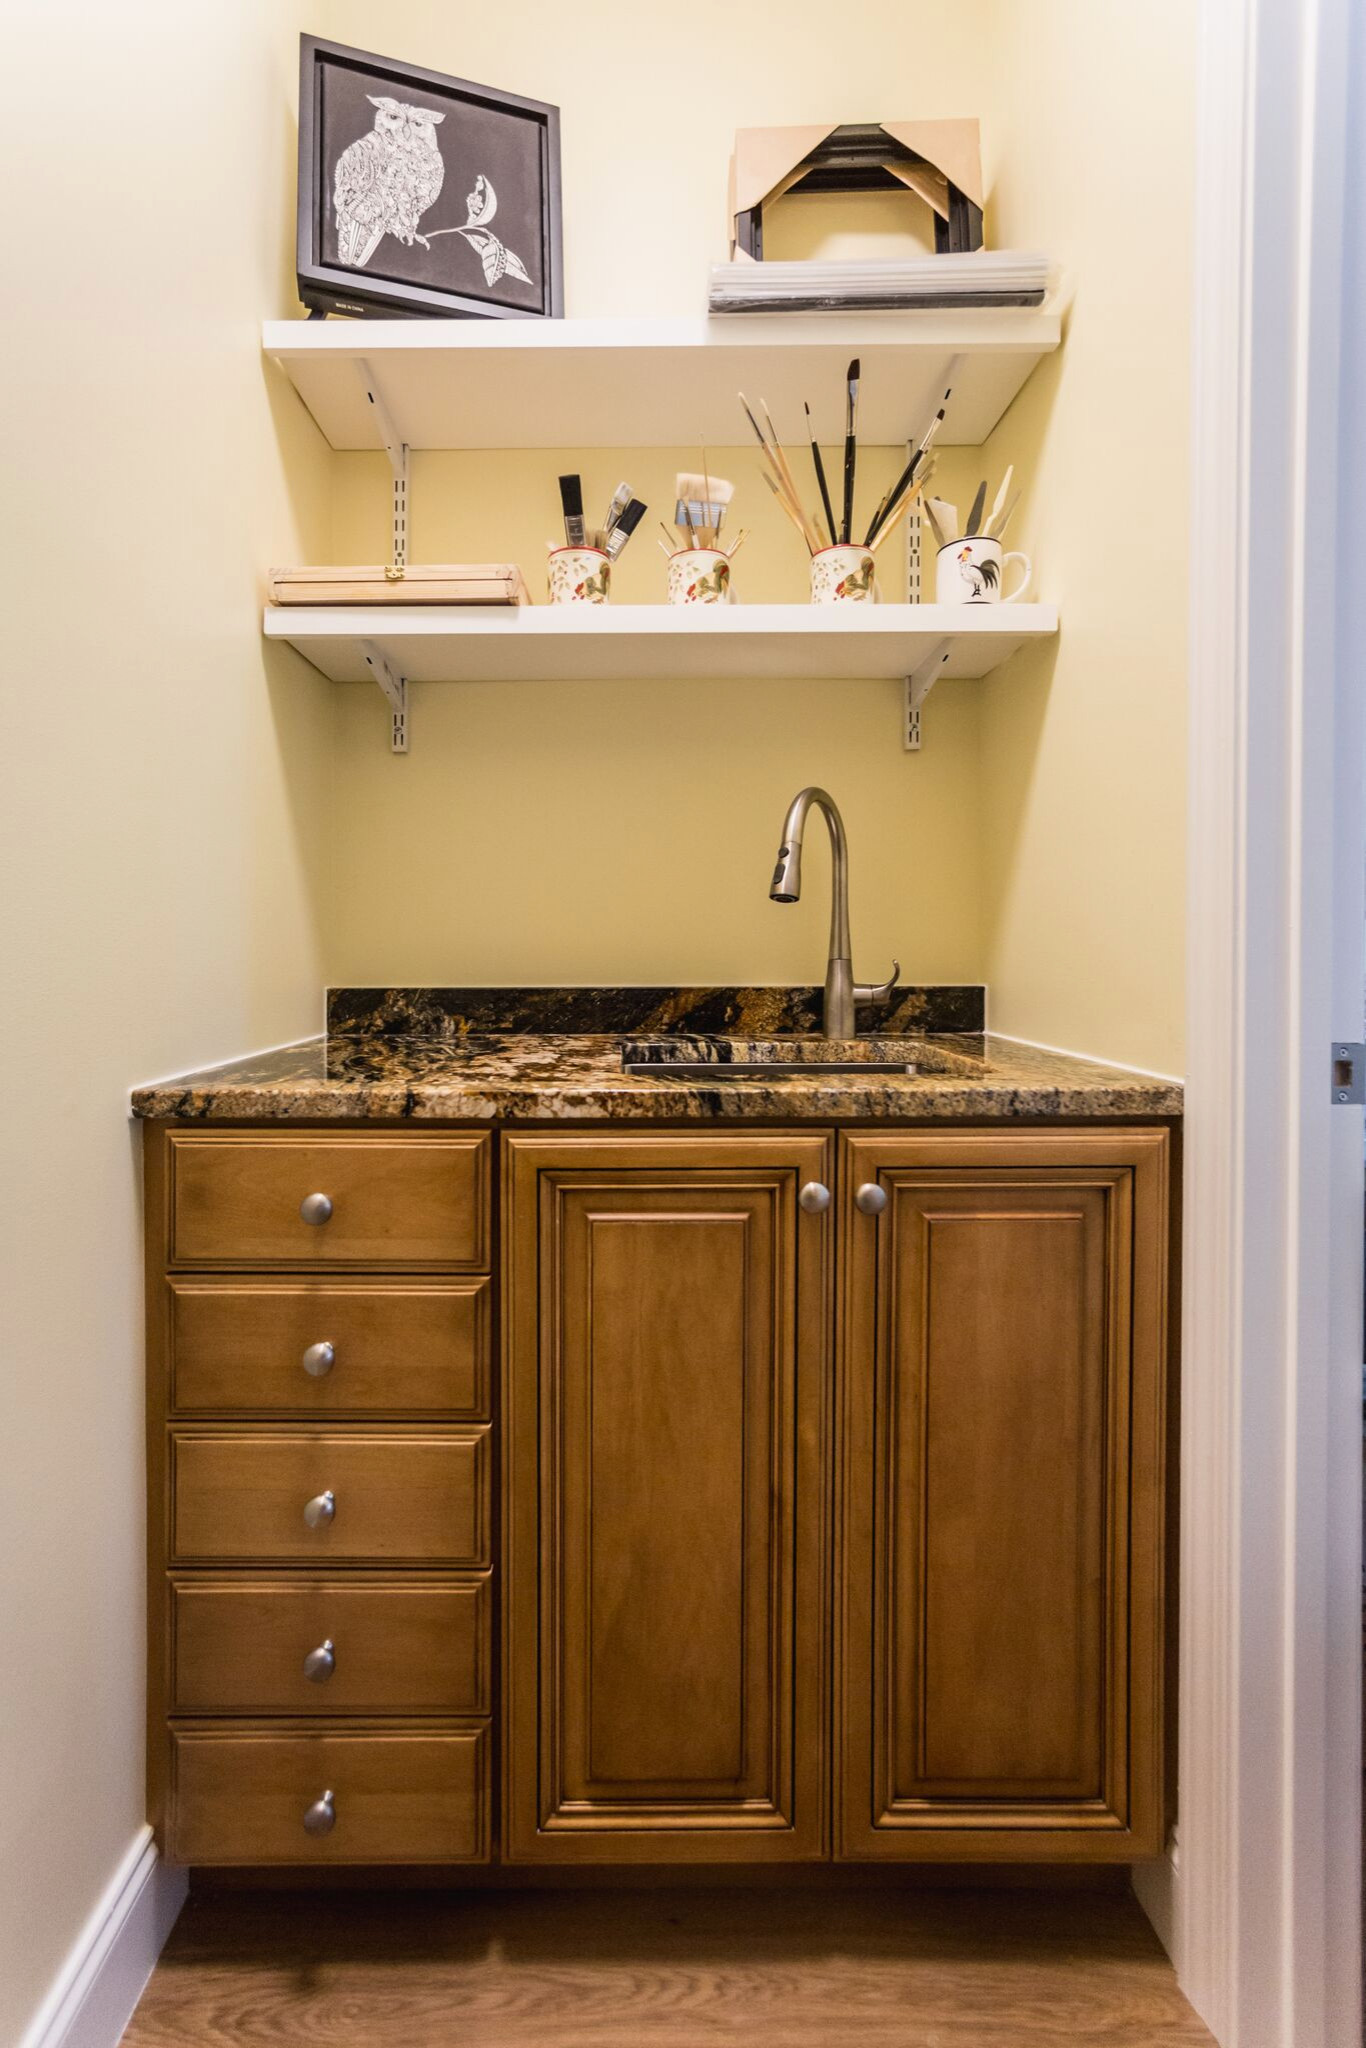 Shallow drawers for art supplies, sink to wash them!